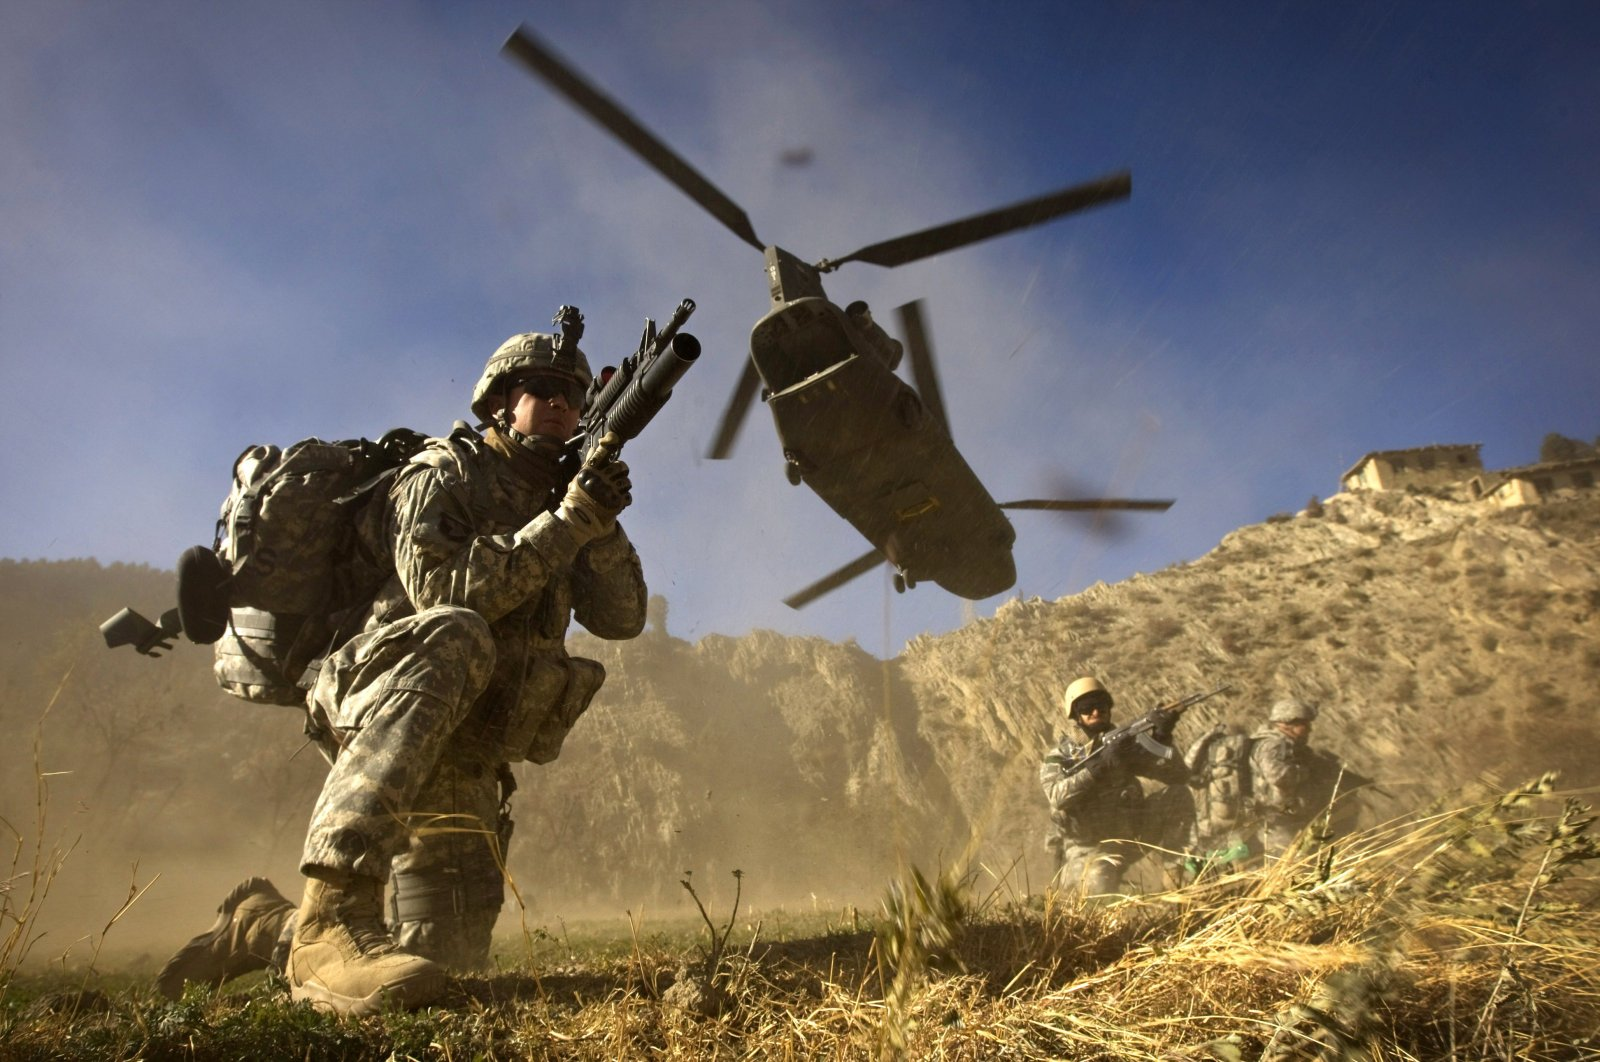 This file photo taken on November 20, 2008 shows US Army soldiers from 2-506 Infantry 101st Airborne Division and Afghan National Army soldiers taking positions after racing off the back of a UH-47 Chinook helicopter during the launch of Operation Shir Pacha into the Derezda Valley in the rugged Spira mountains in Khost province, along the Afghan-Pakistan Border, directly across the border from Pakistan's Waziristan region. (AFP Photo)